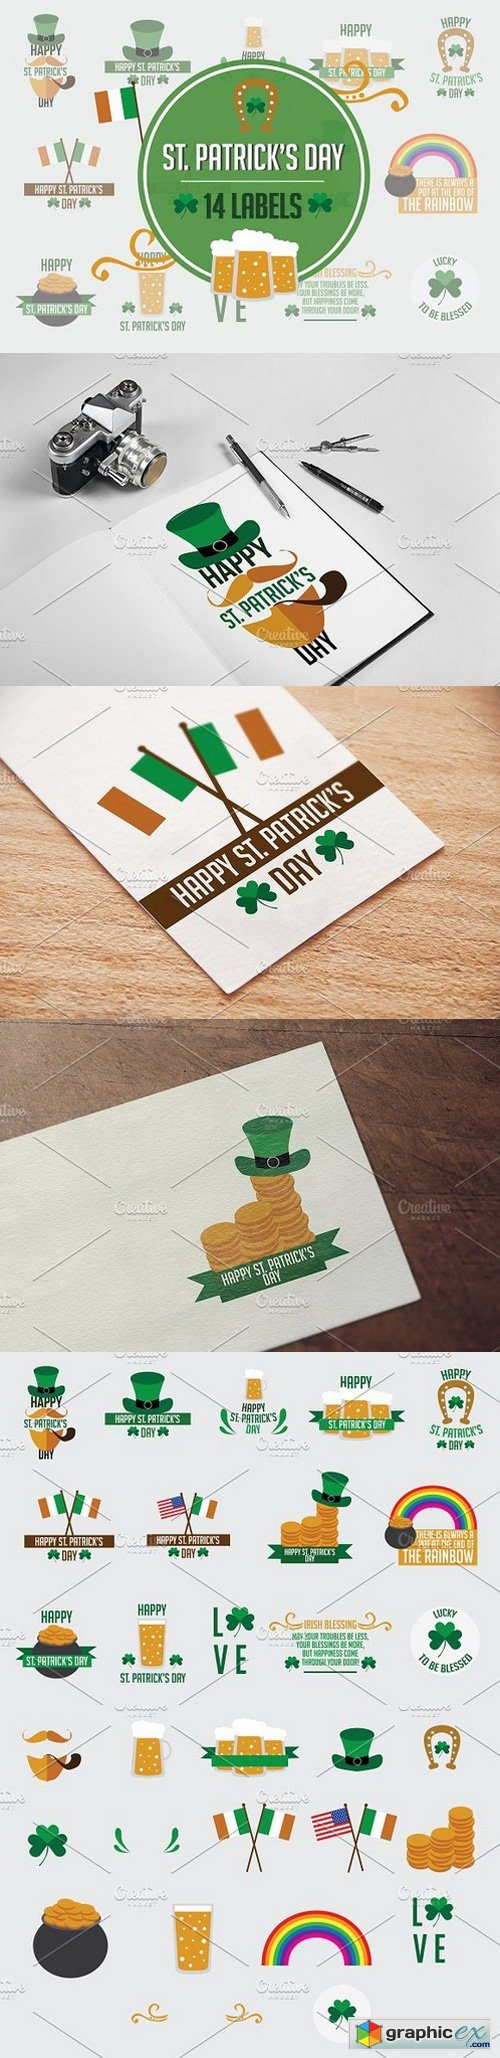 14 Labels: St. Patrick's Day